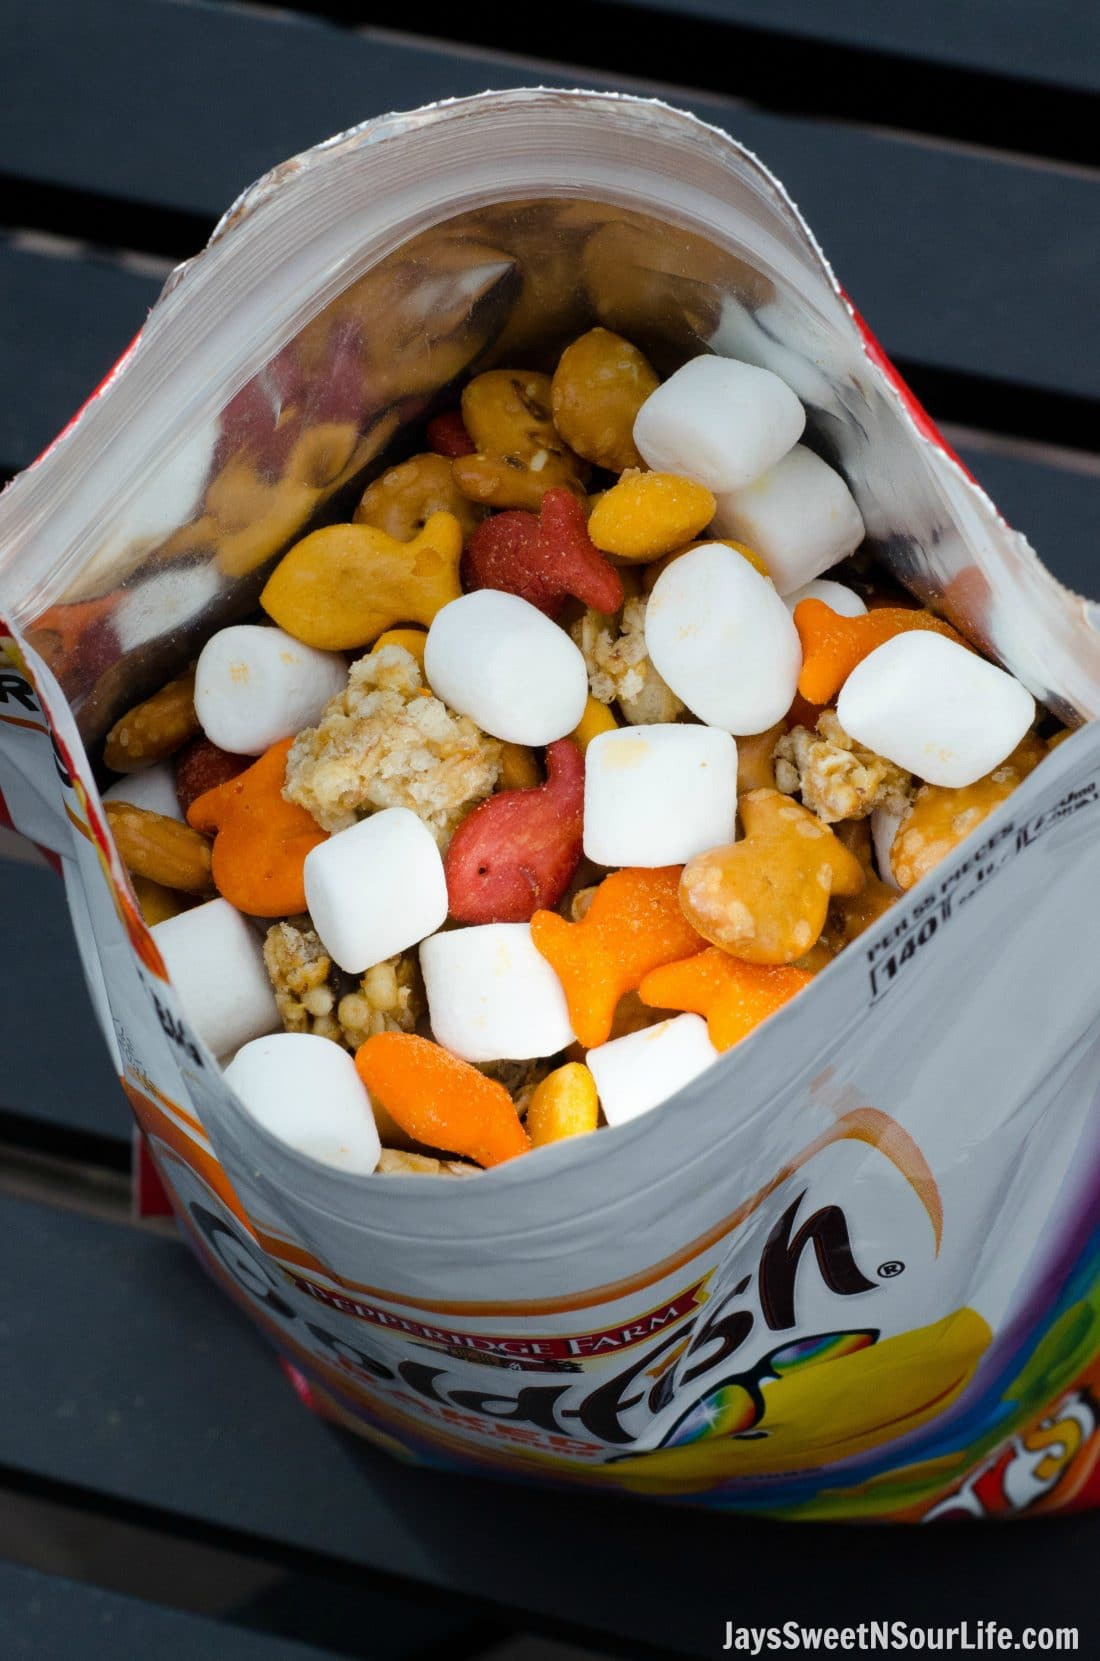 Keep your Goldfish Trail Mix fresh by repurposing the Resealable Bag they are now sold in. Save time and money by keeping your trail mix fresh and on the go friendly.